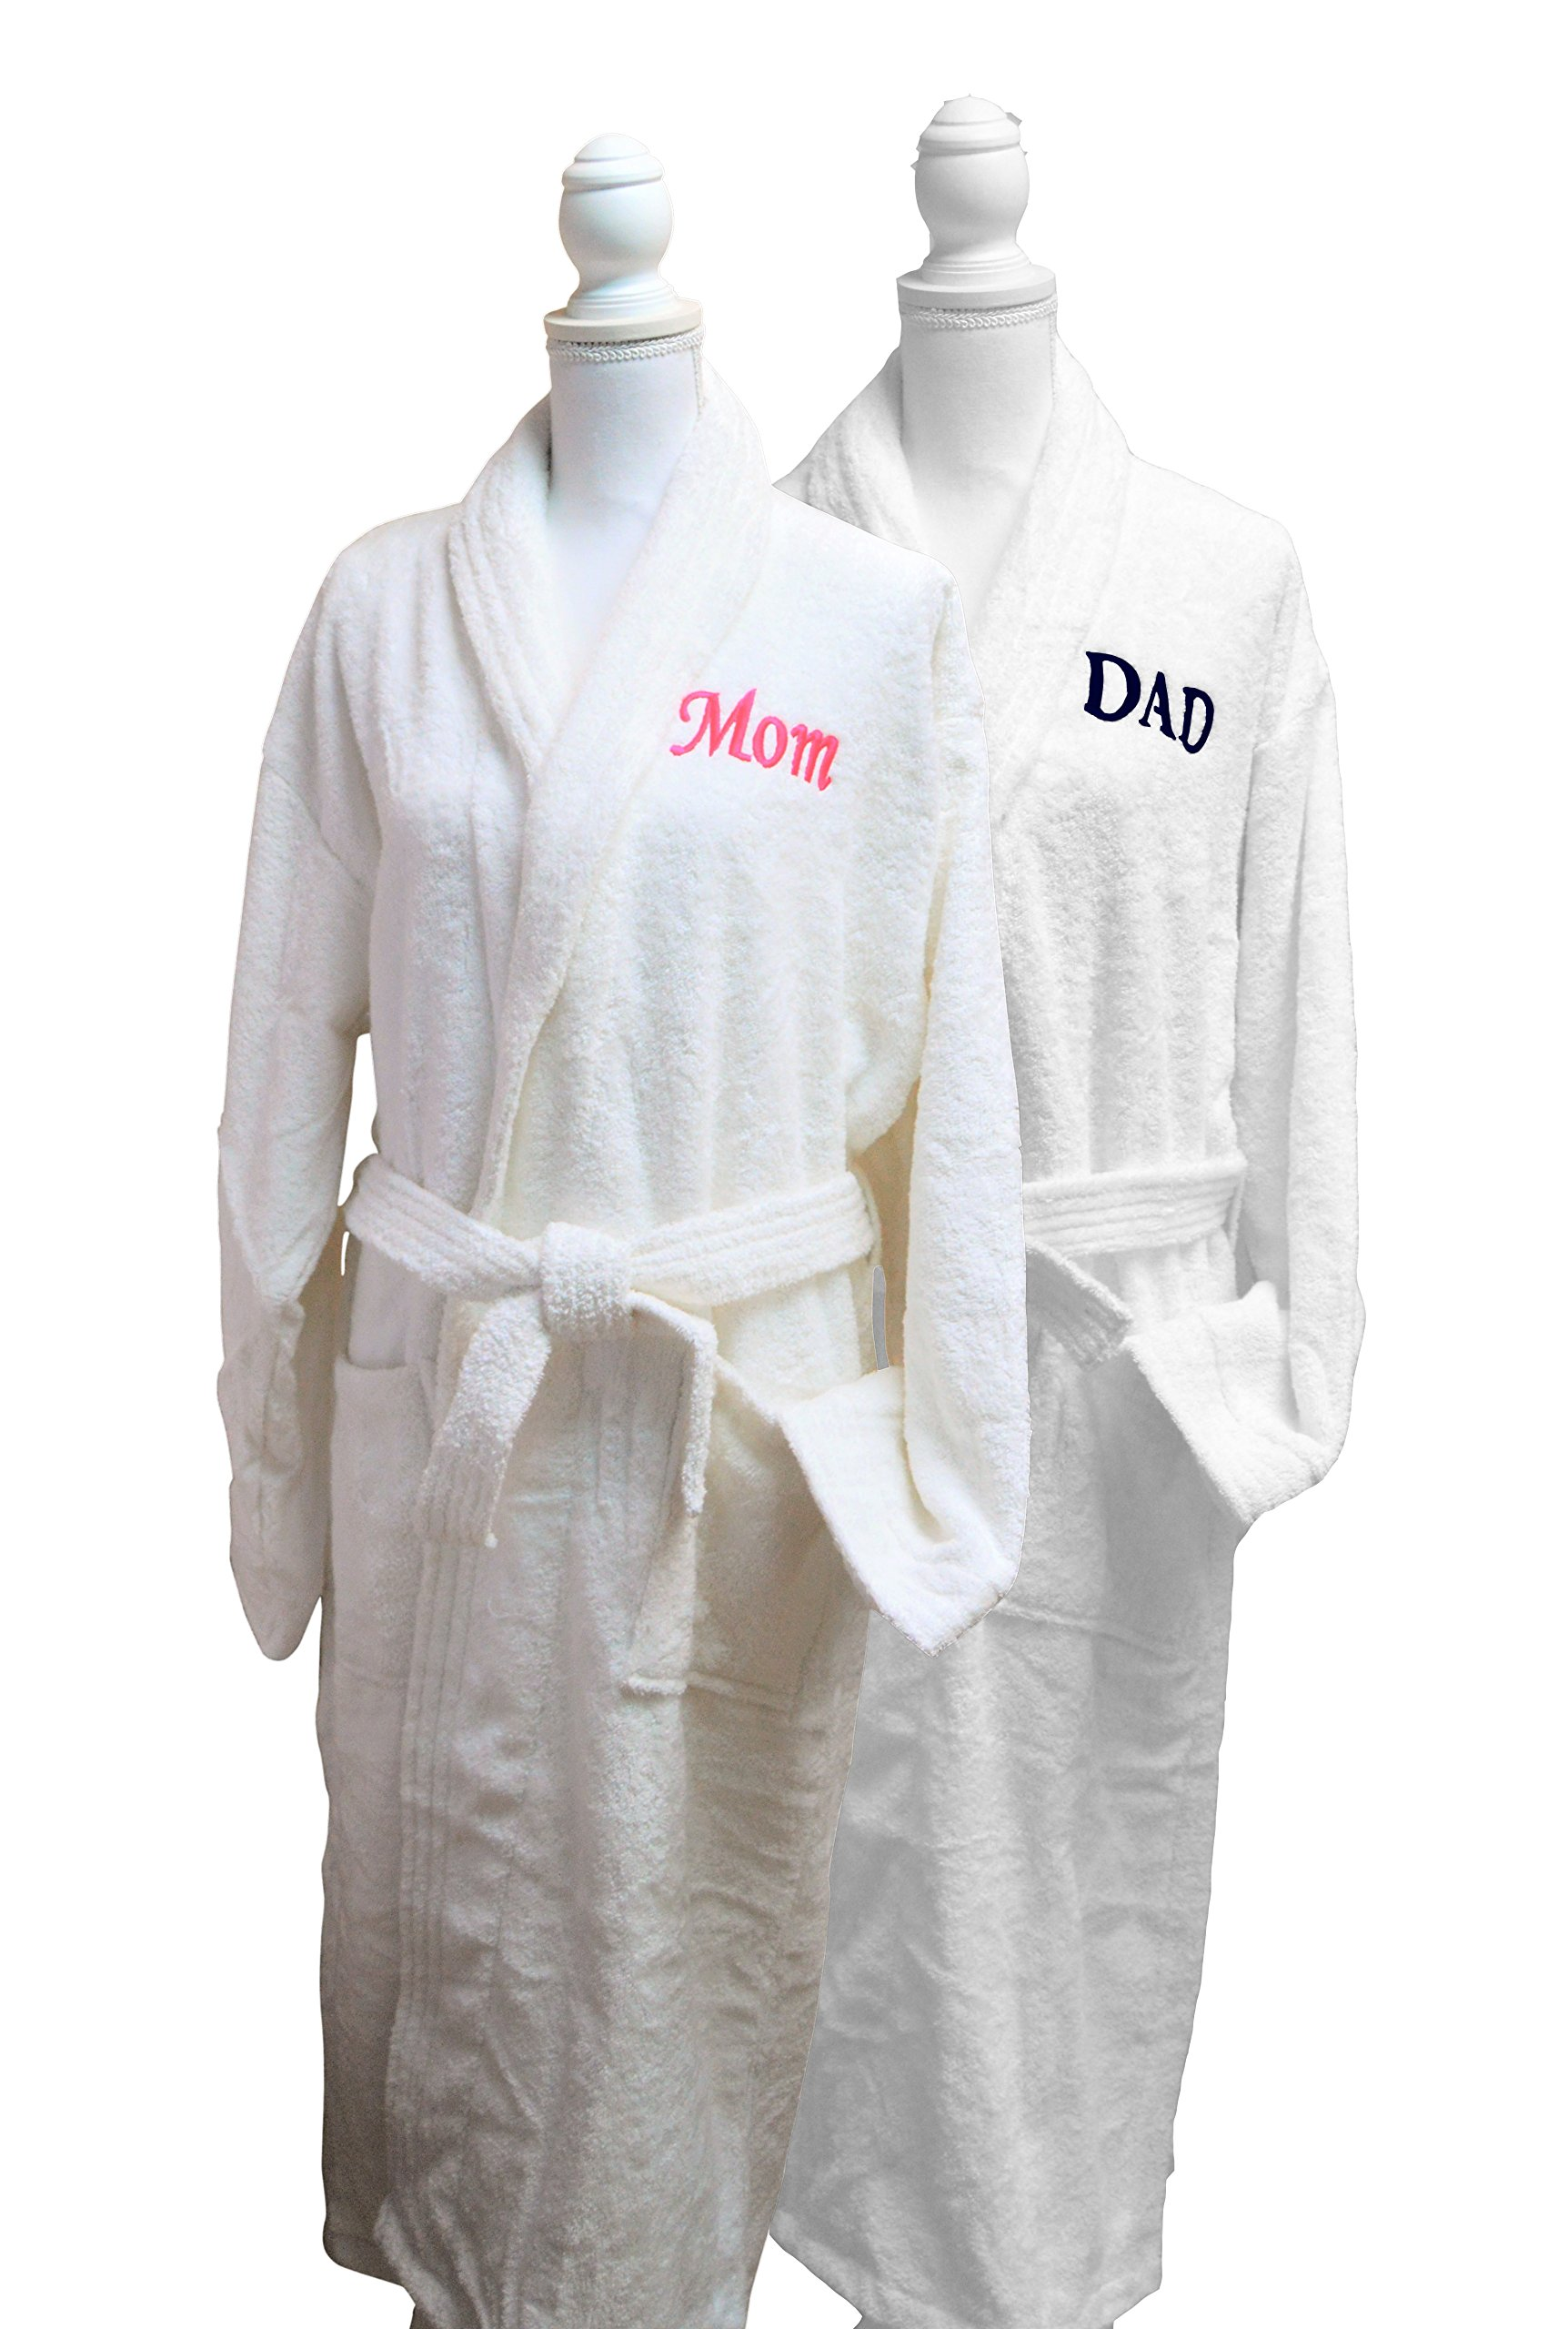 Resort Spa Home Décor Mom & Dad Monogrammed/Embroidered Luxury White Terry Cotton Spa Robe Set of 2 – This Bathrobe Set is Ideal for Parents, Christmas, or Anniversary Gift